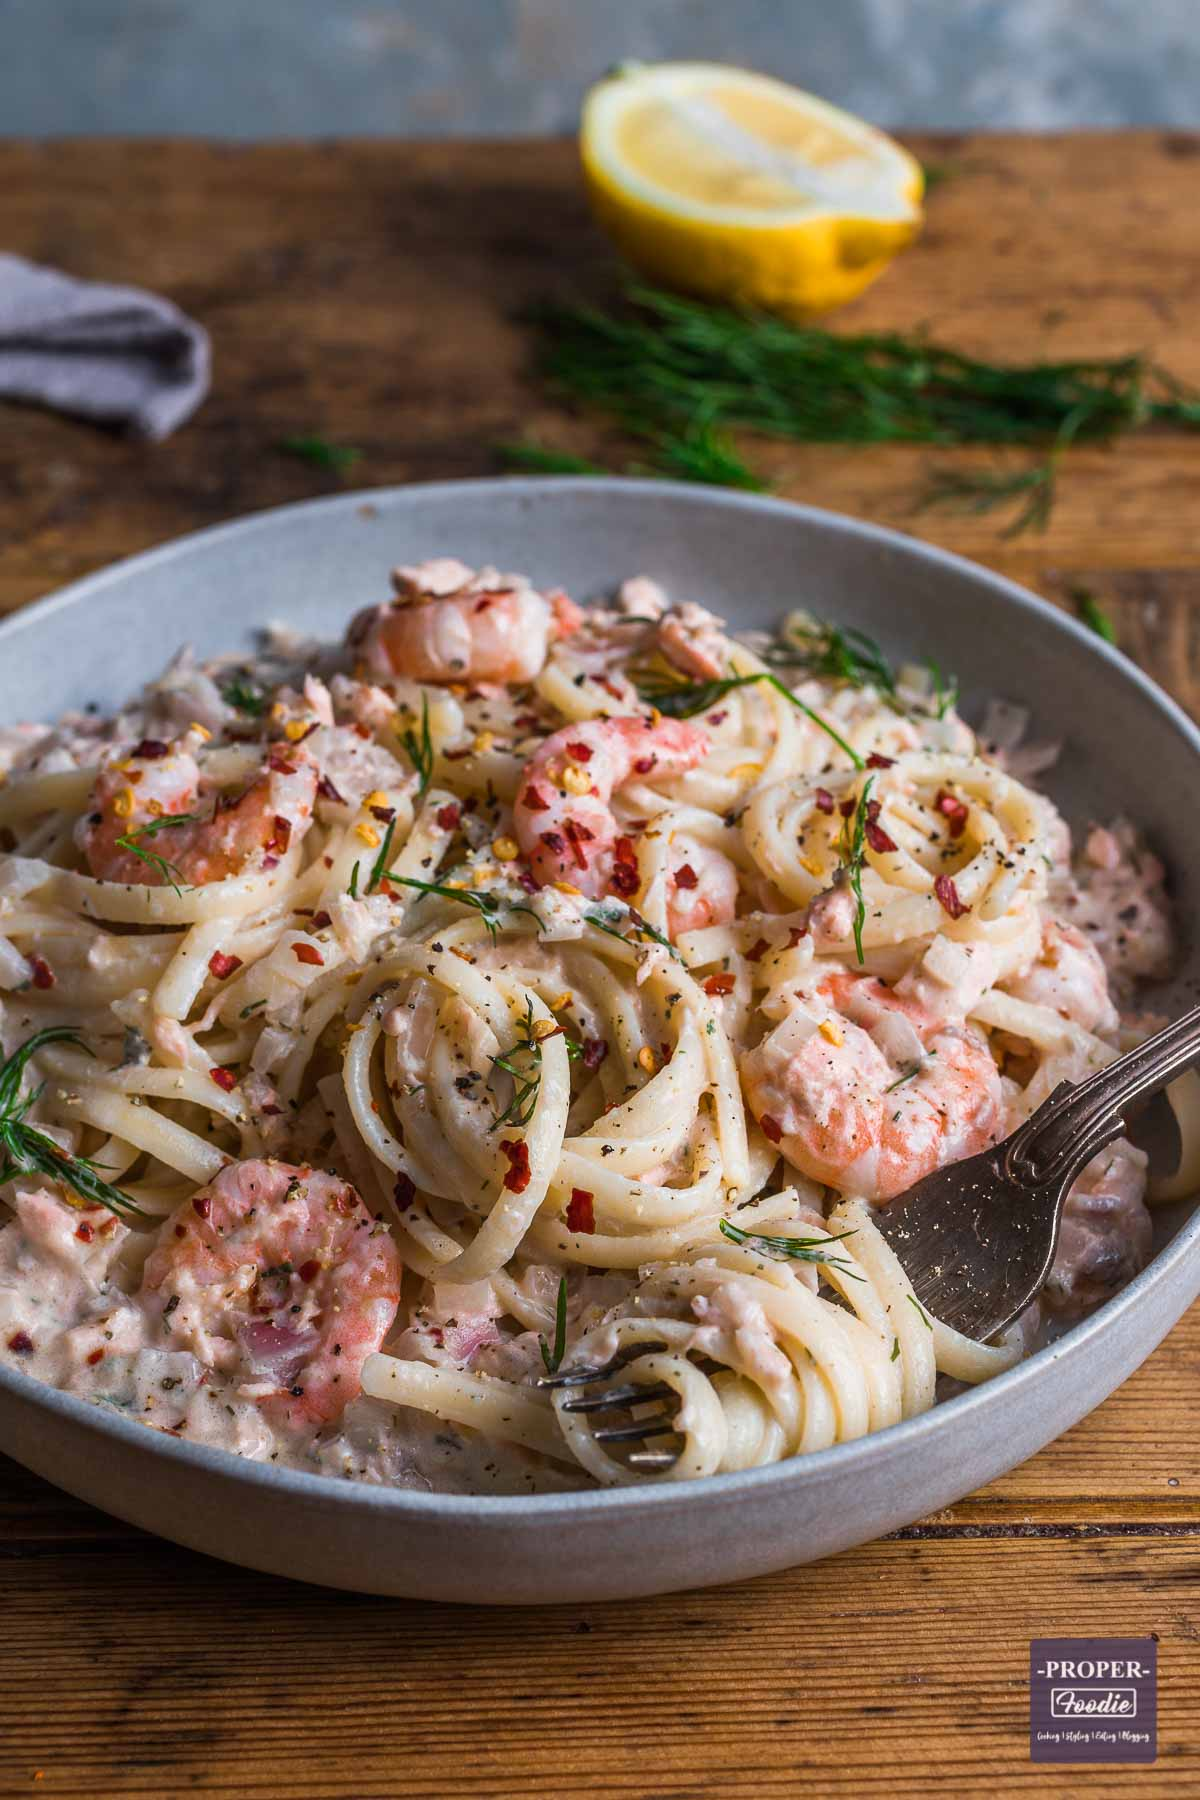 A bowl of linguine in a creamy sauce with salmon and prawns